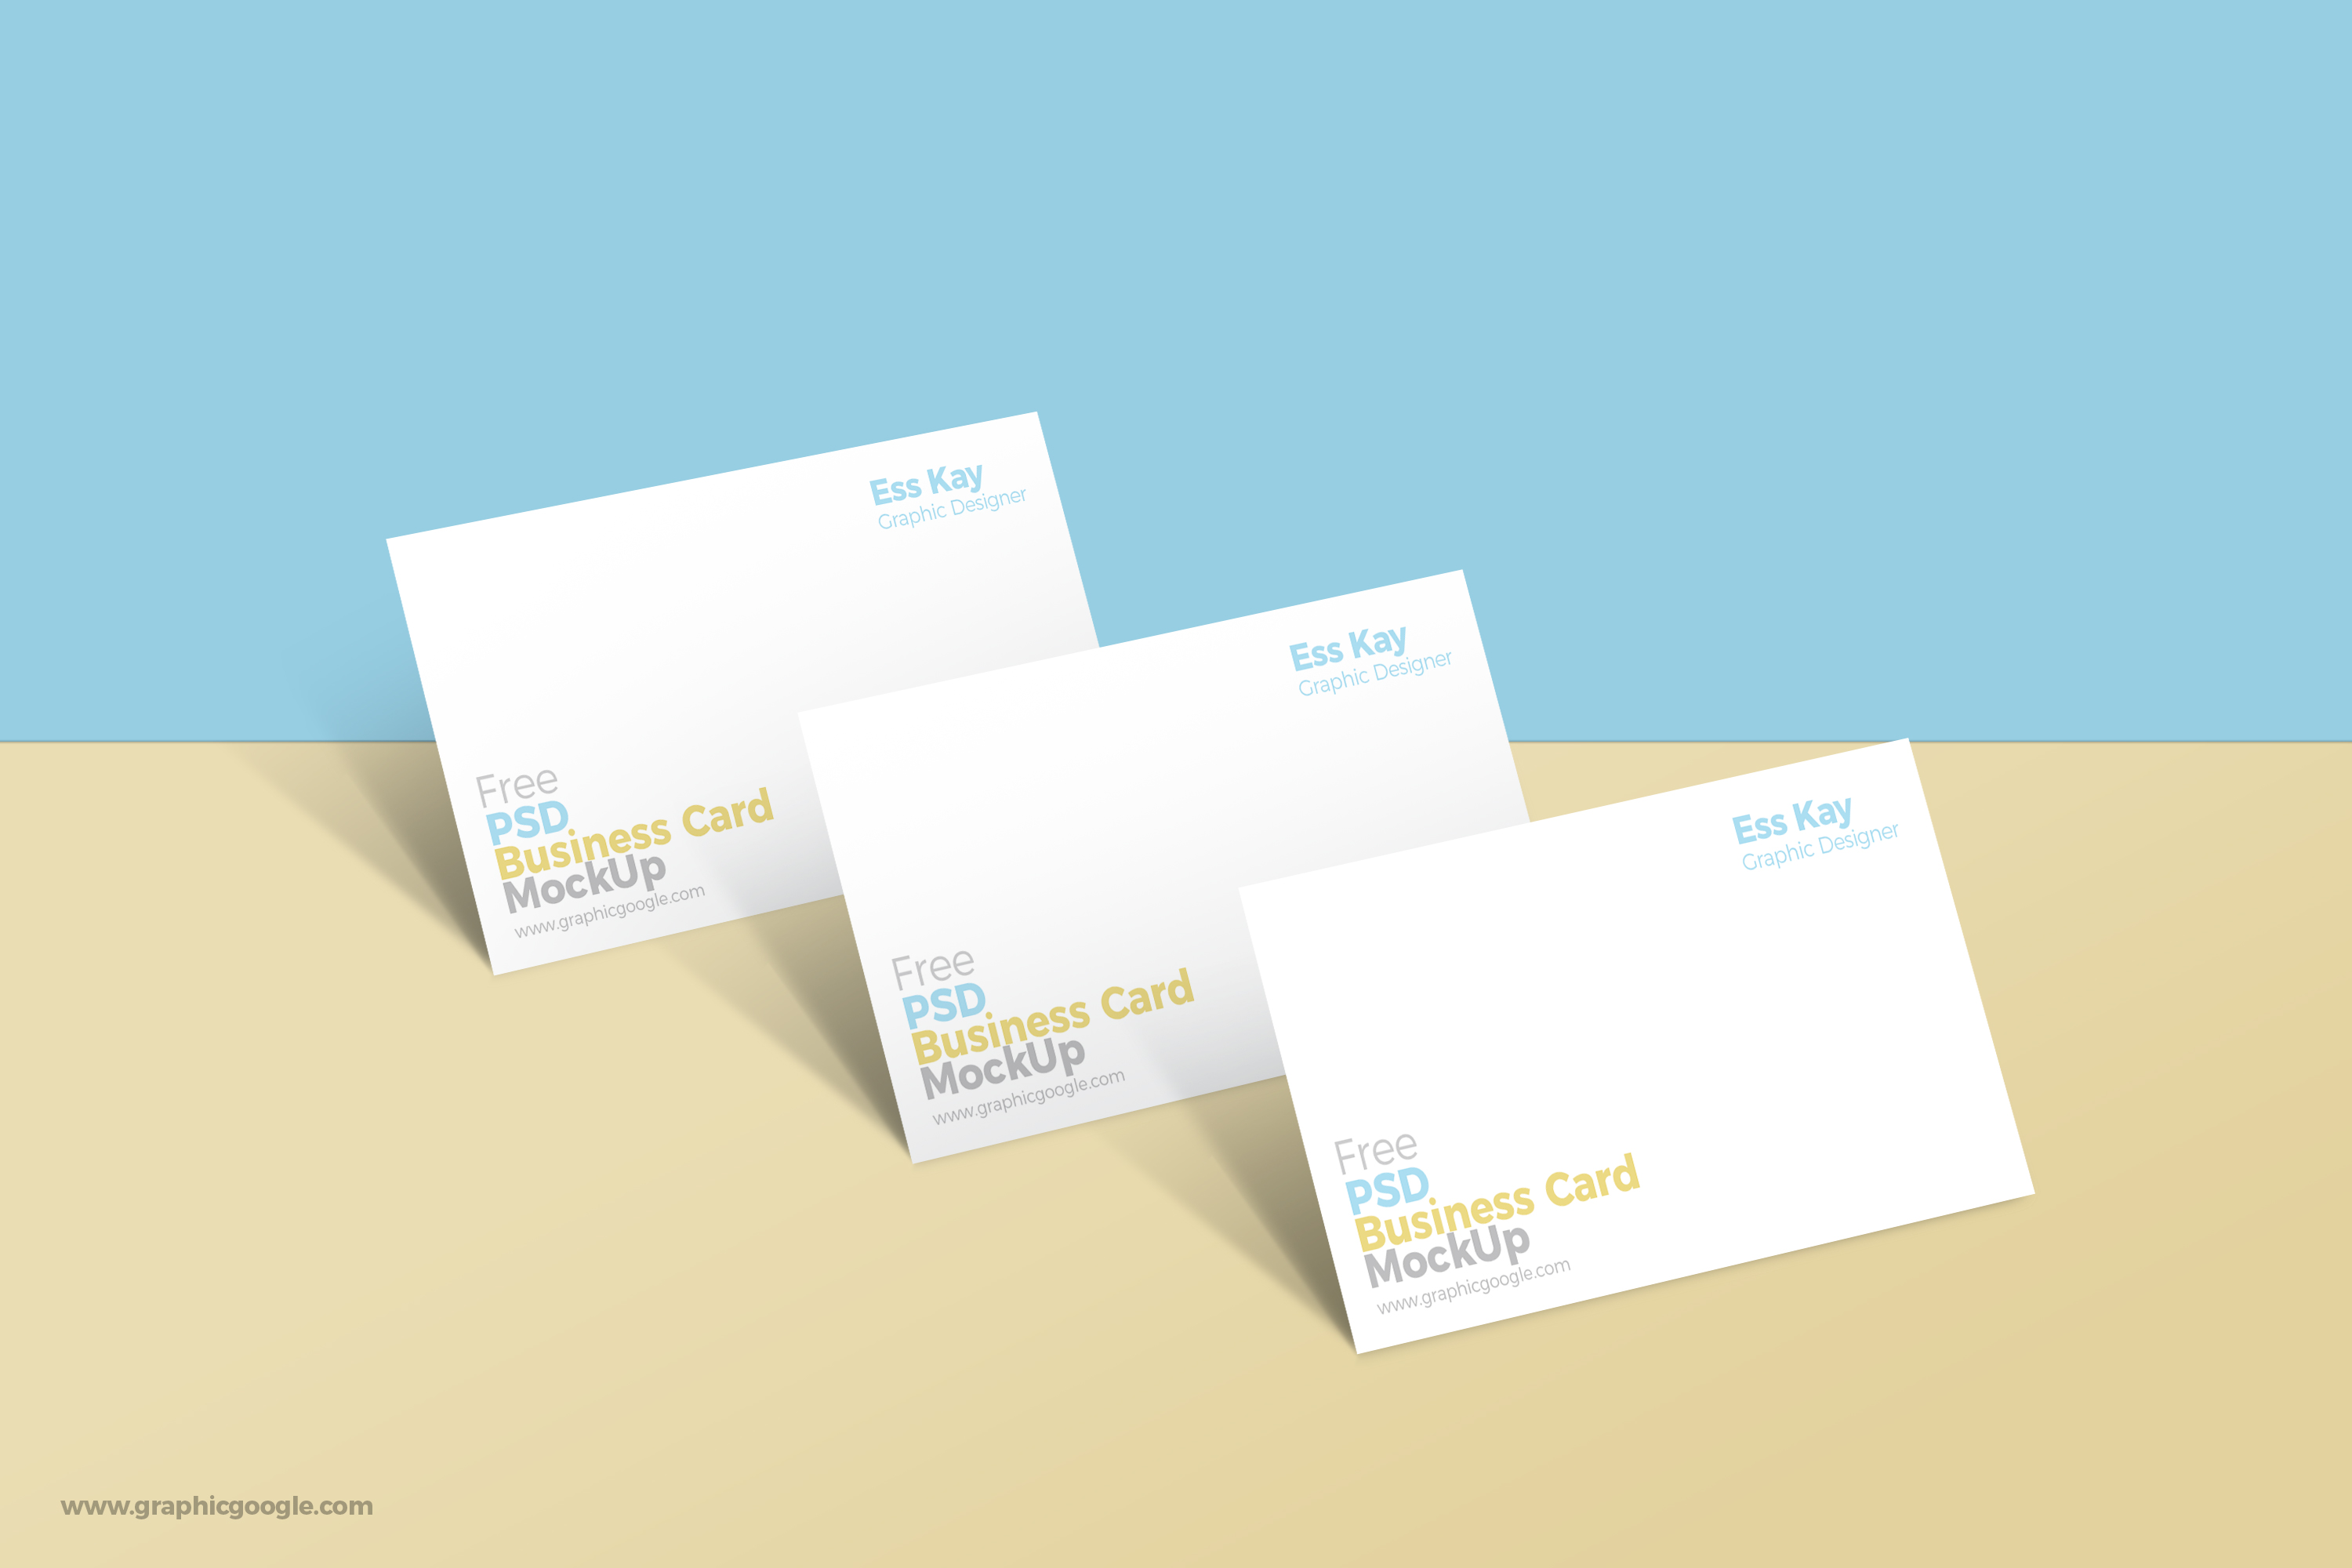 Free-PSD-Business-Card-MockUp